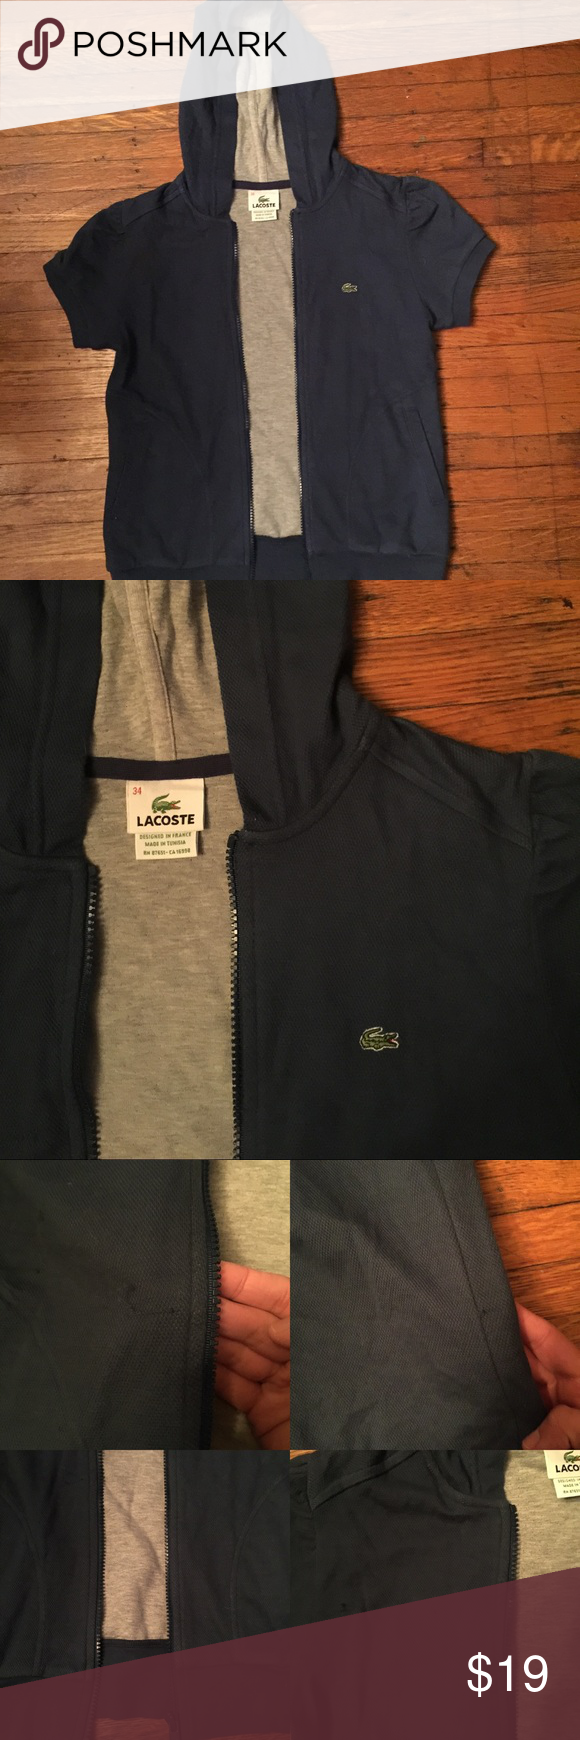 Lacoste hoody Super cute for fall or spring. Light blue. There is some fading on the edges and some loose threading( showed in pics). Size small. Smoke free home. Lacoste Tops Sweatshirts & Hoodies